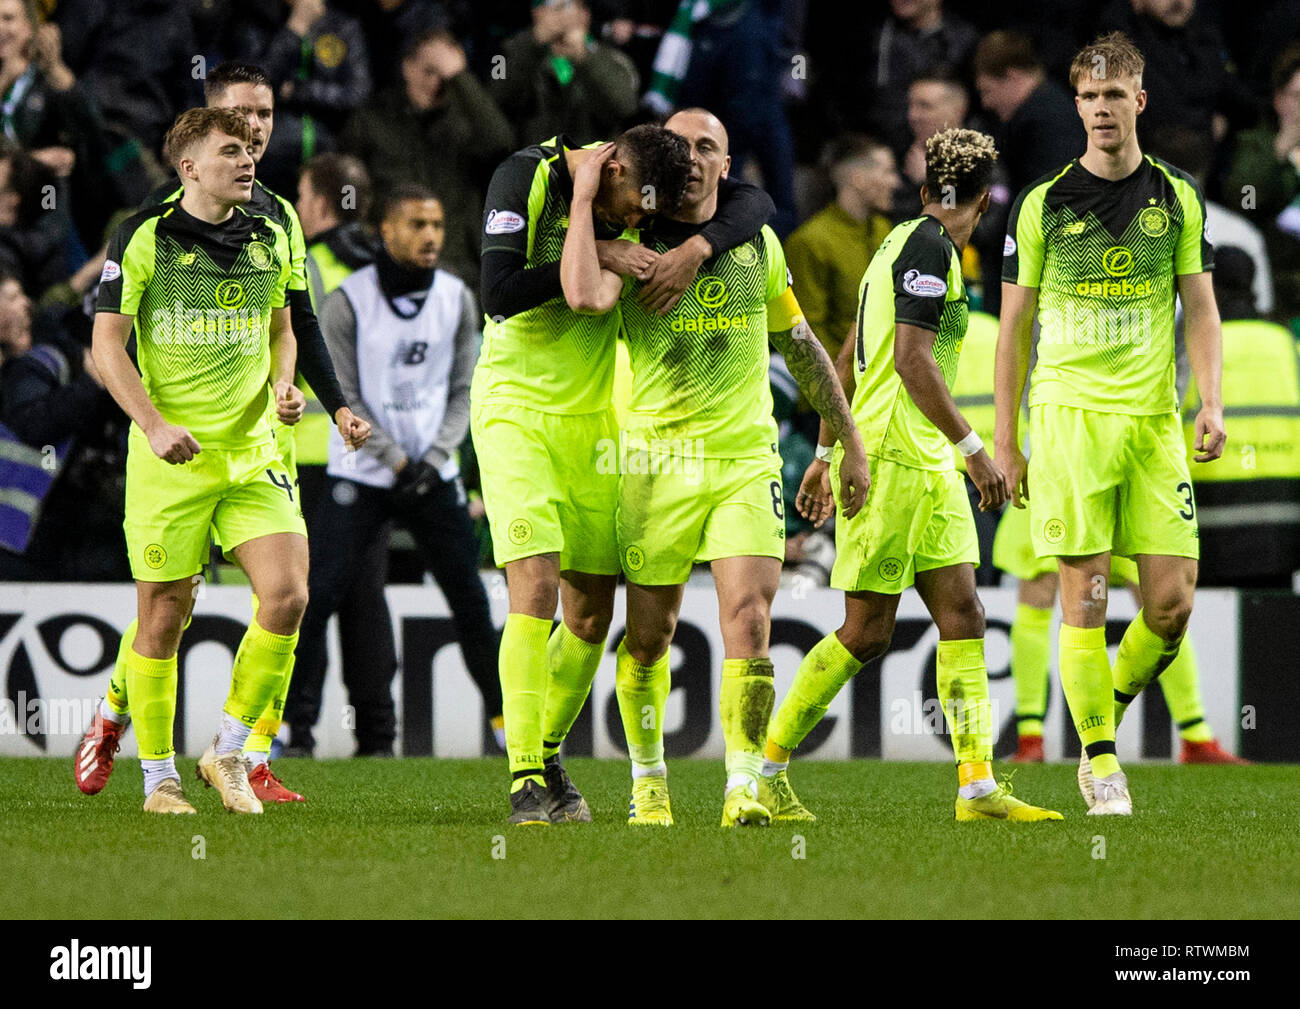 Edinburgh, Scotland, UK. 02nd March, 2019. Scottish Cup Quarter Final - Hibernian v Celtic, Edinburgh, Midlothian, UK. 02nd Mar, 2019. Pic shows: Celtic midfielder, Scott Brown, and Israeli central defender, Nir Bitton, celebrate after Brown puts the visitors 2 ahead as Hibs play host to Celtic in the Quarter Final of the Scottish Cup at Easter Road Stadium, Edinburgh Credit: Alamy/Ian Jacobs Credit: Ian Jacobs/Alamy Live News - Stock Image